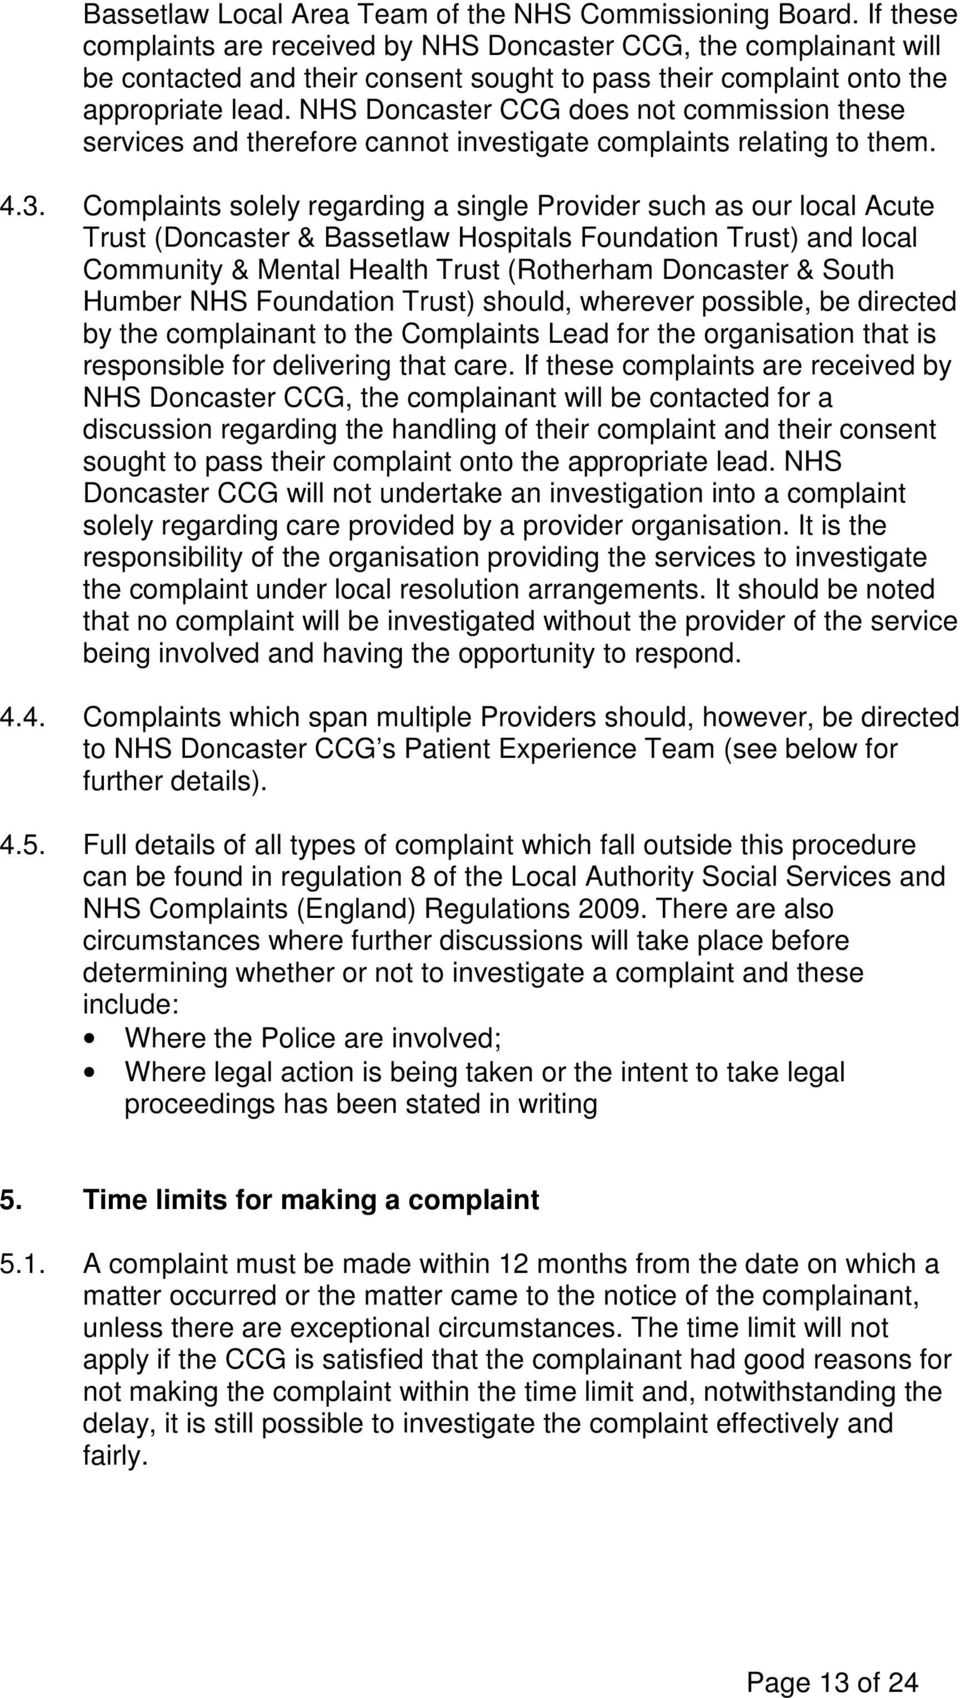 NHS Doncaster CCG does not commission these services and therefore cannot investigate complaints relating to them. 4.3.